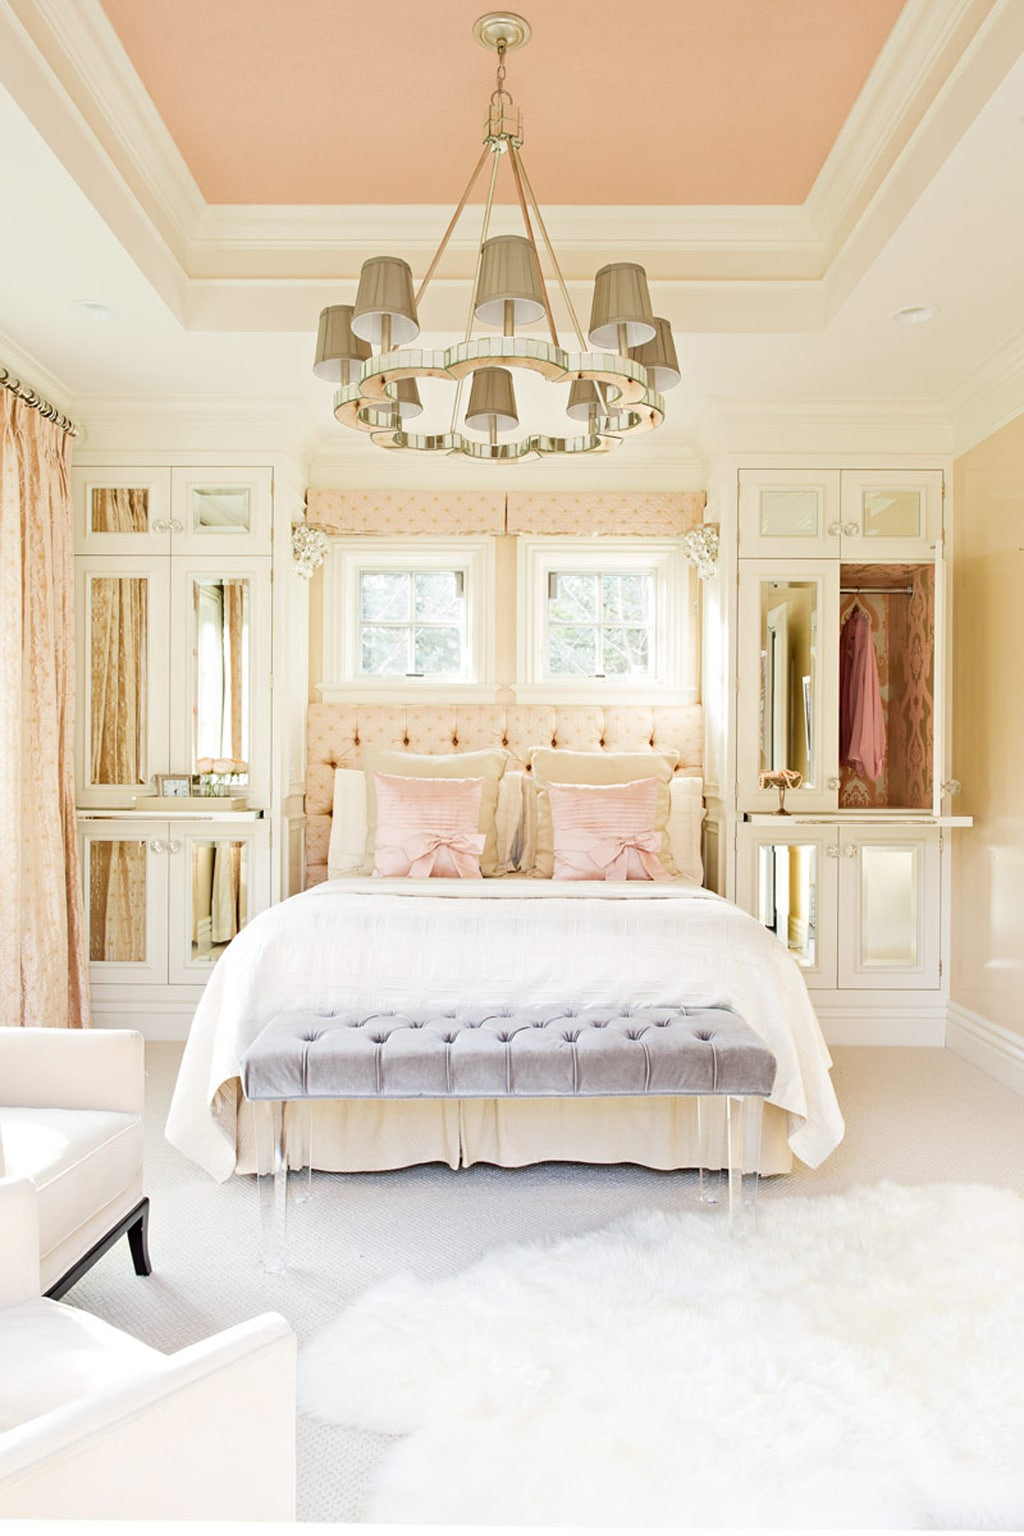 Neighborly Peach on the ceiling in master bedroom from Elizabeth Kimberly Design.